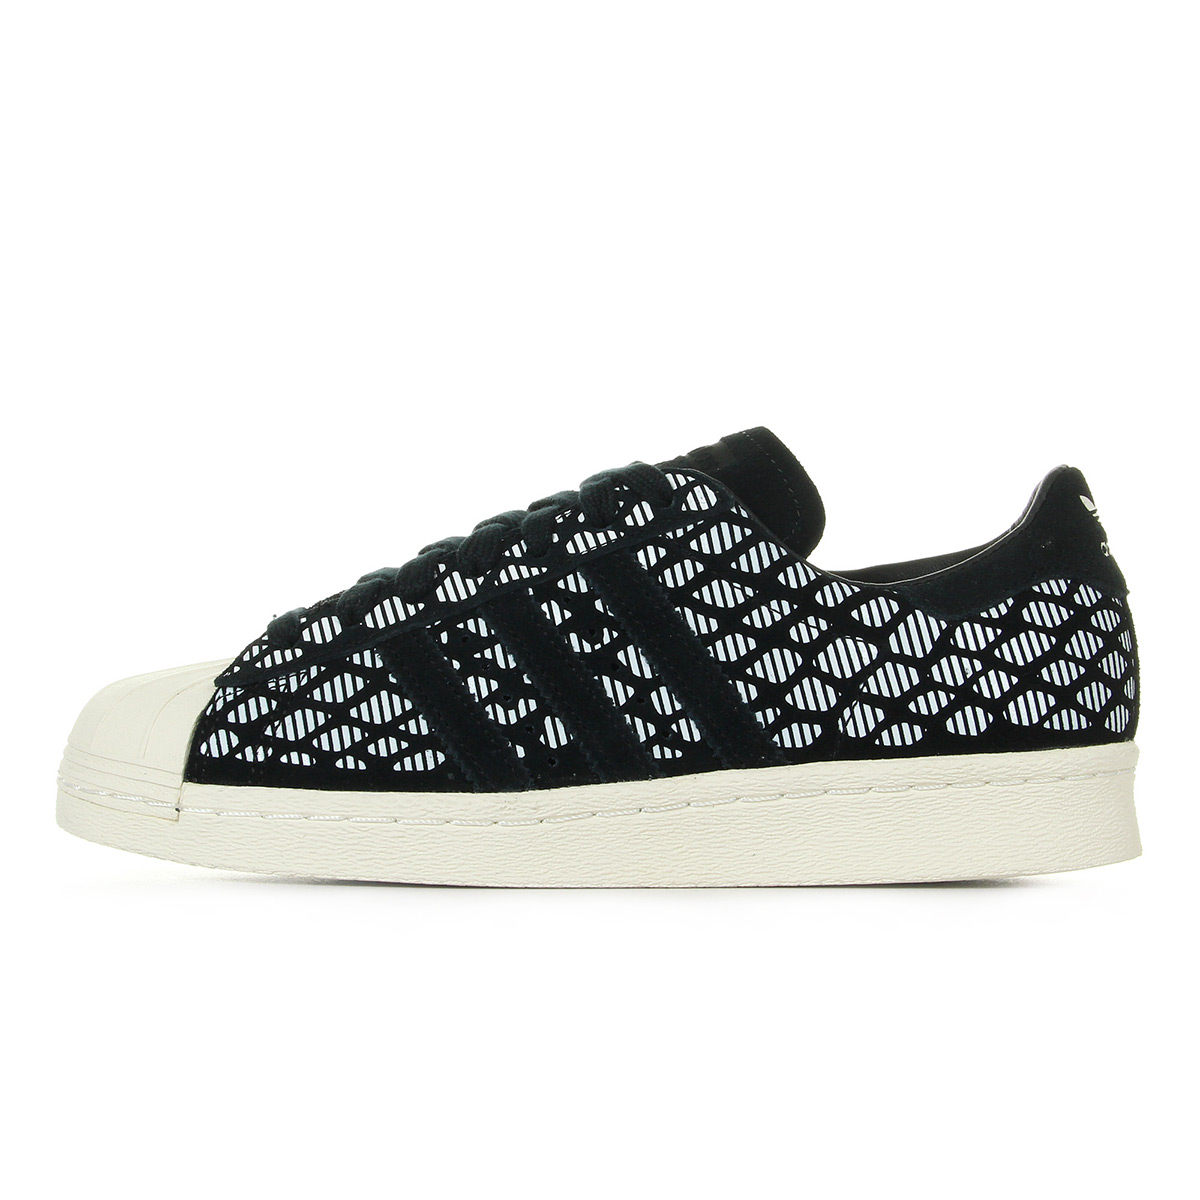 adidas Superstar 80S w BZ0642, Baskets mode femme